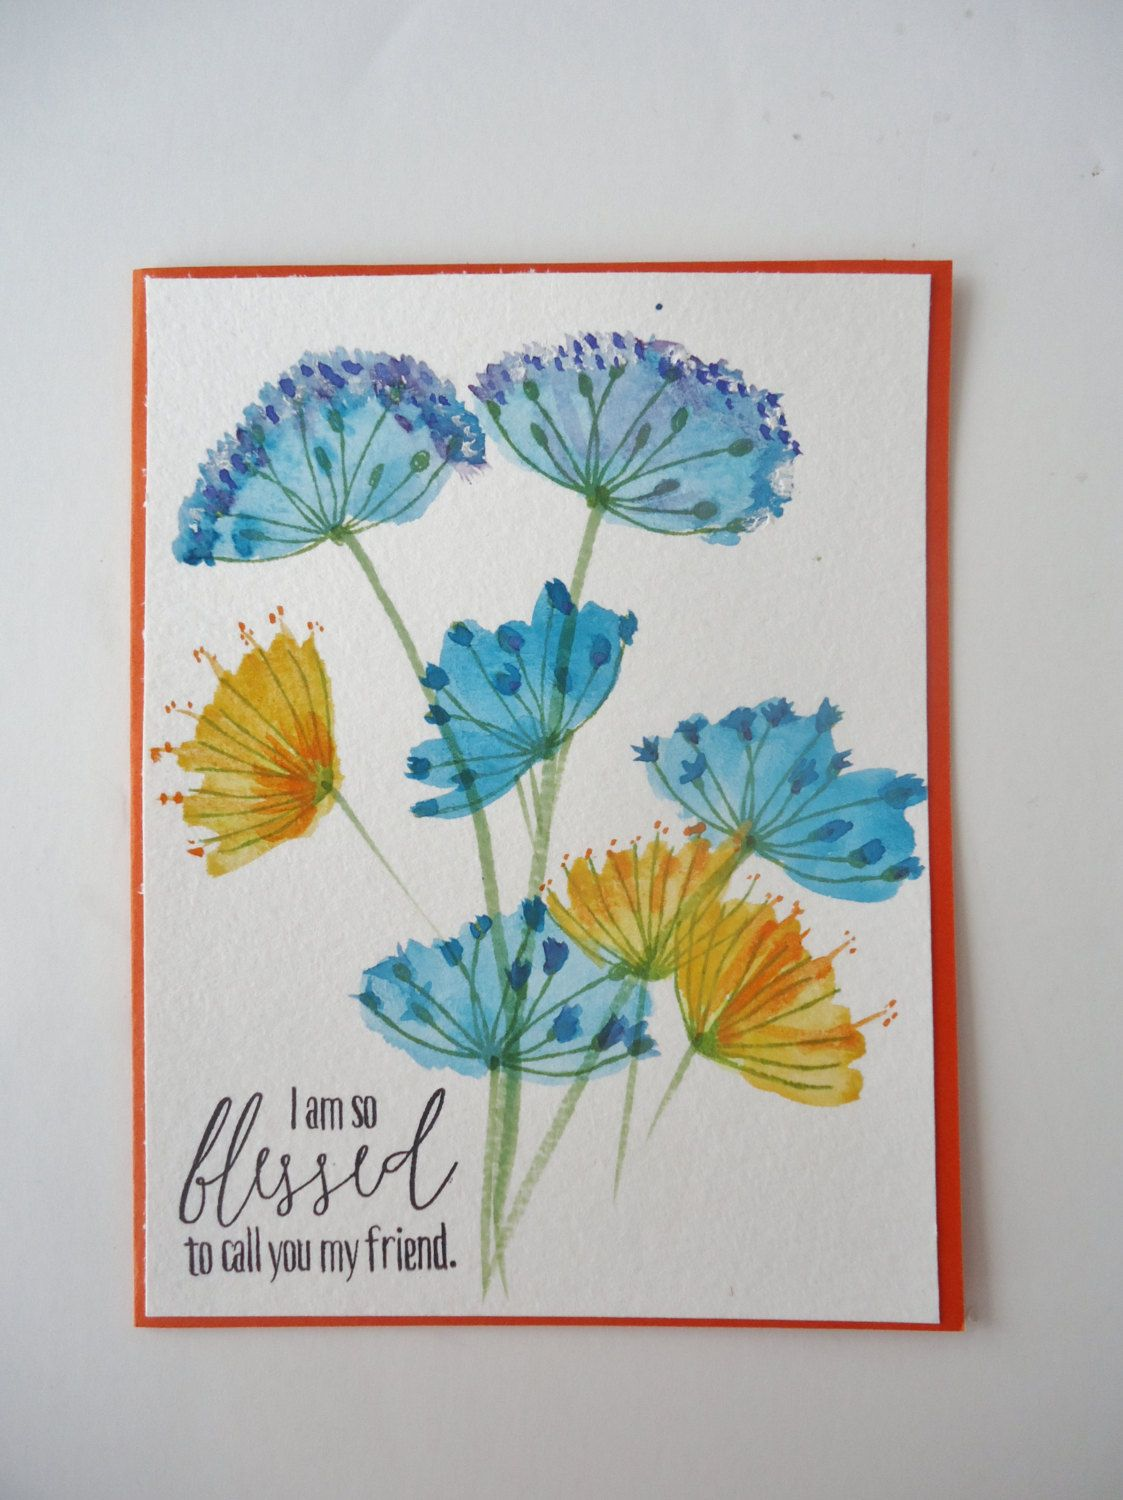 Water color flowers friendship card handmade greeting card i am